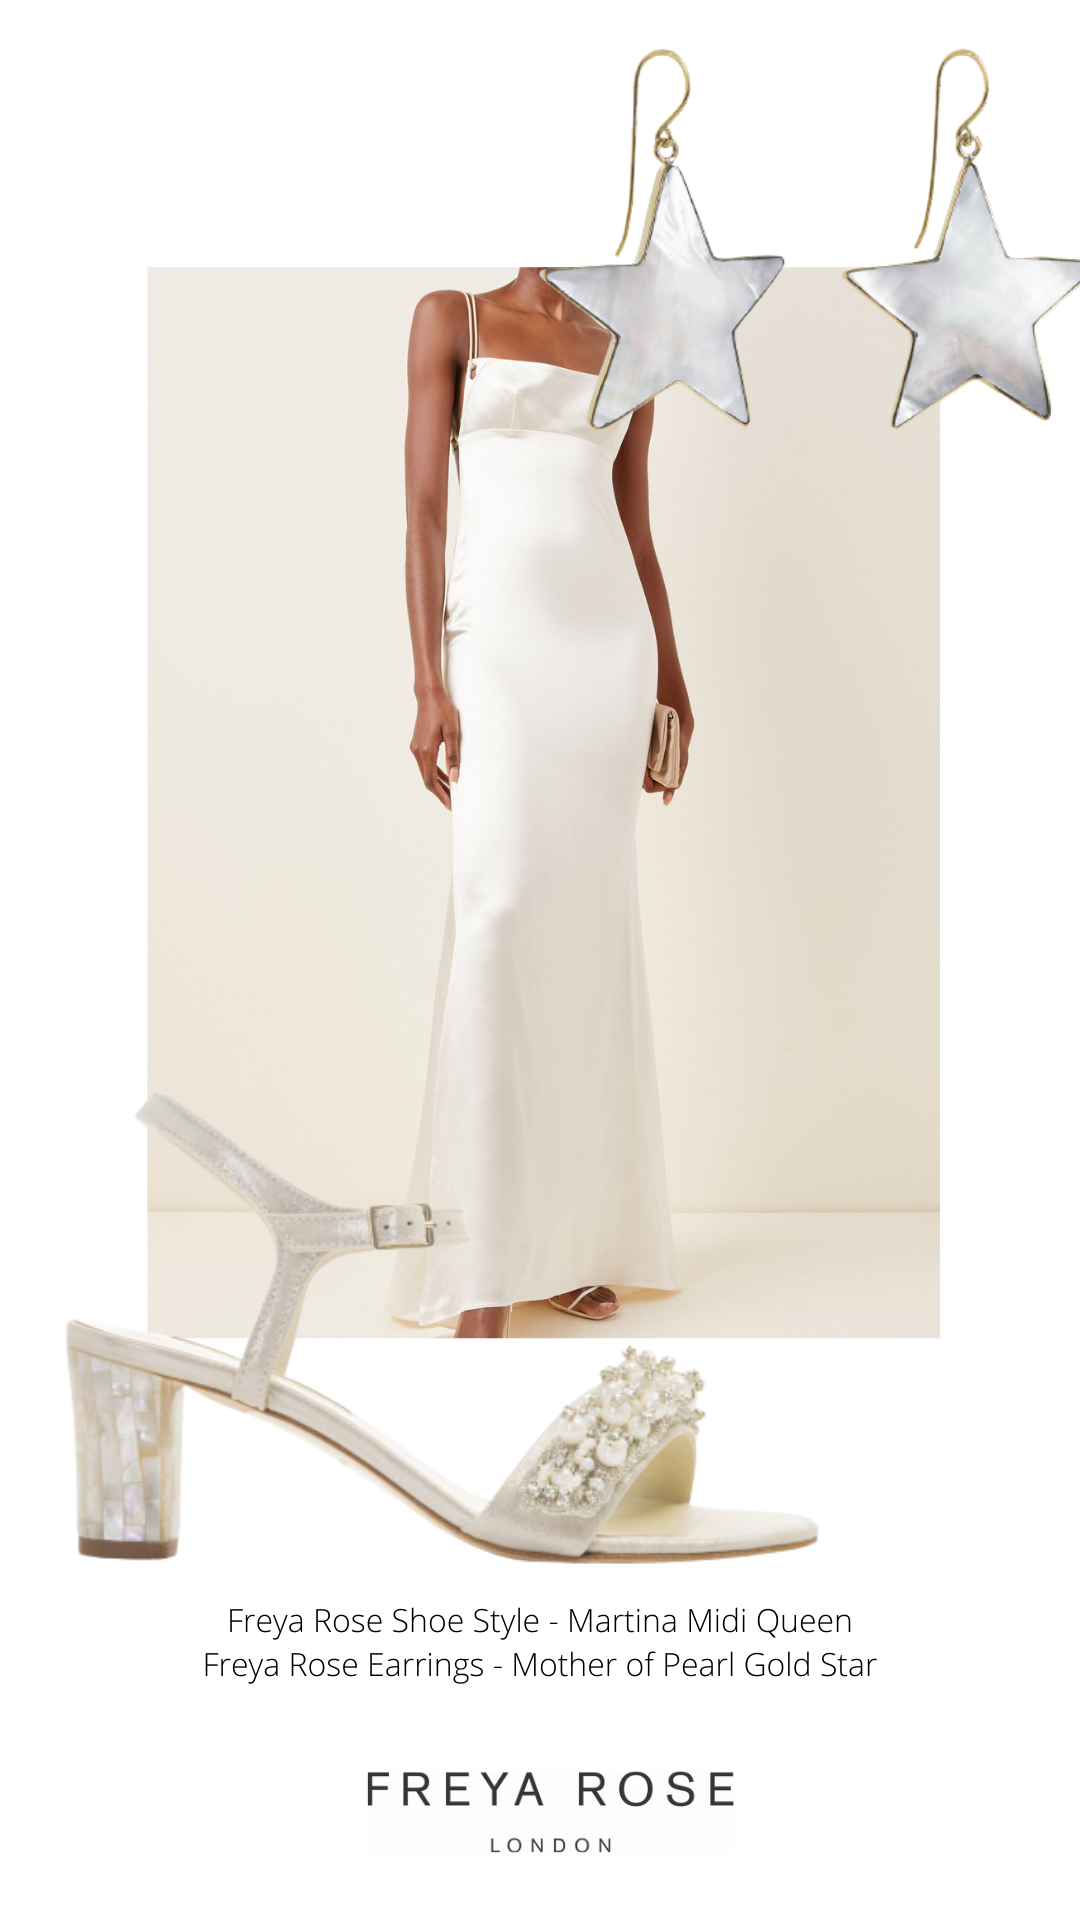 martina midi queen pearl champagne coloured low block heel bridal shoe styling